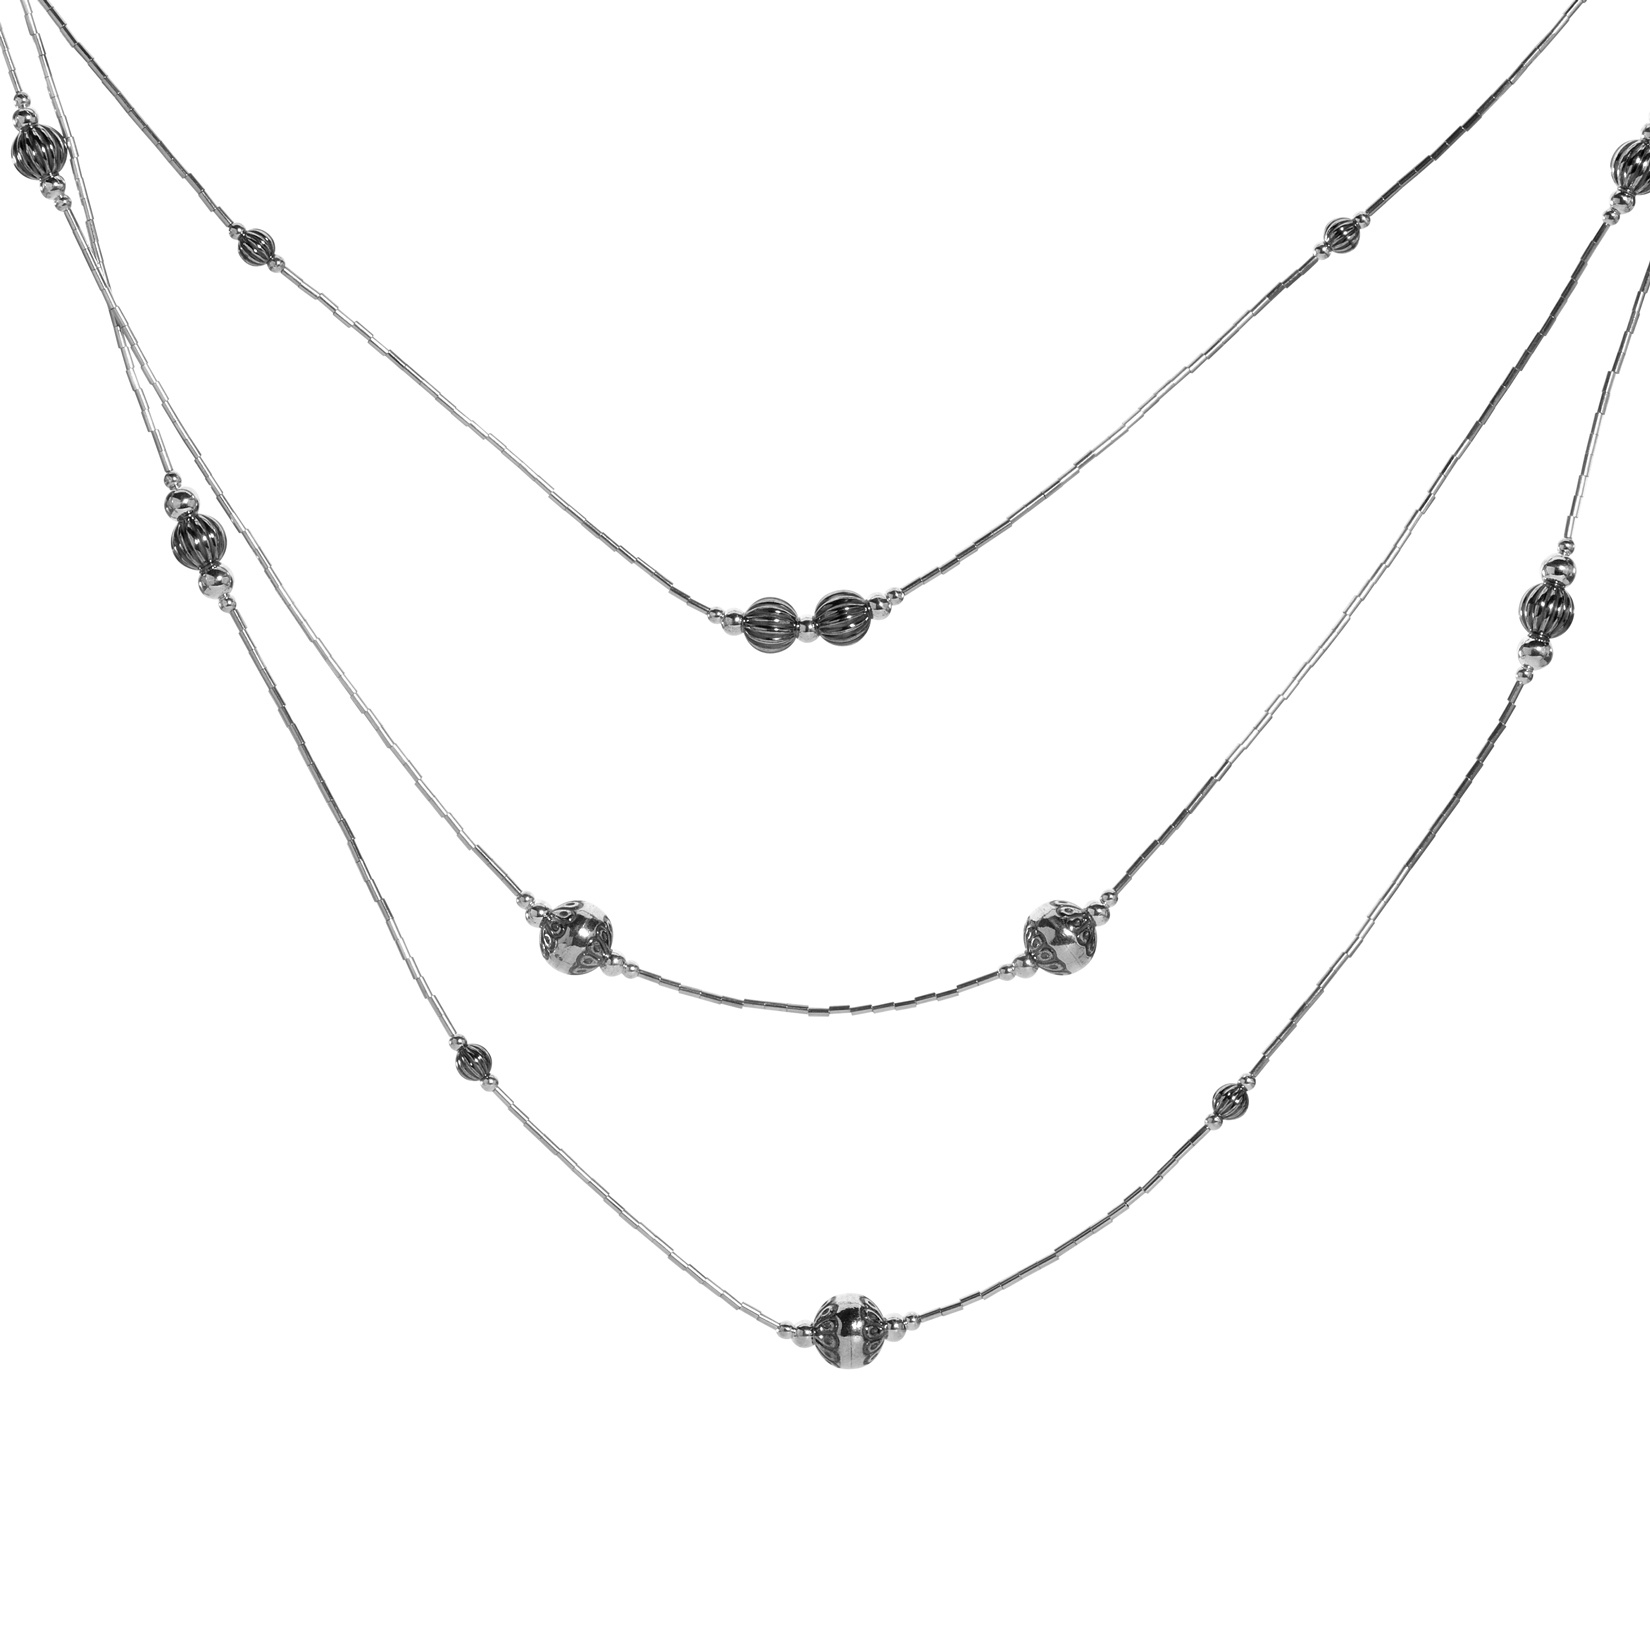 Sterling Silver Bugle Beads with Native Pearl Bead Stations 3-Tier Necklace 28 Inch